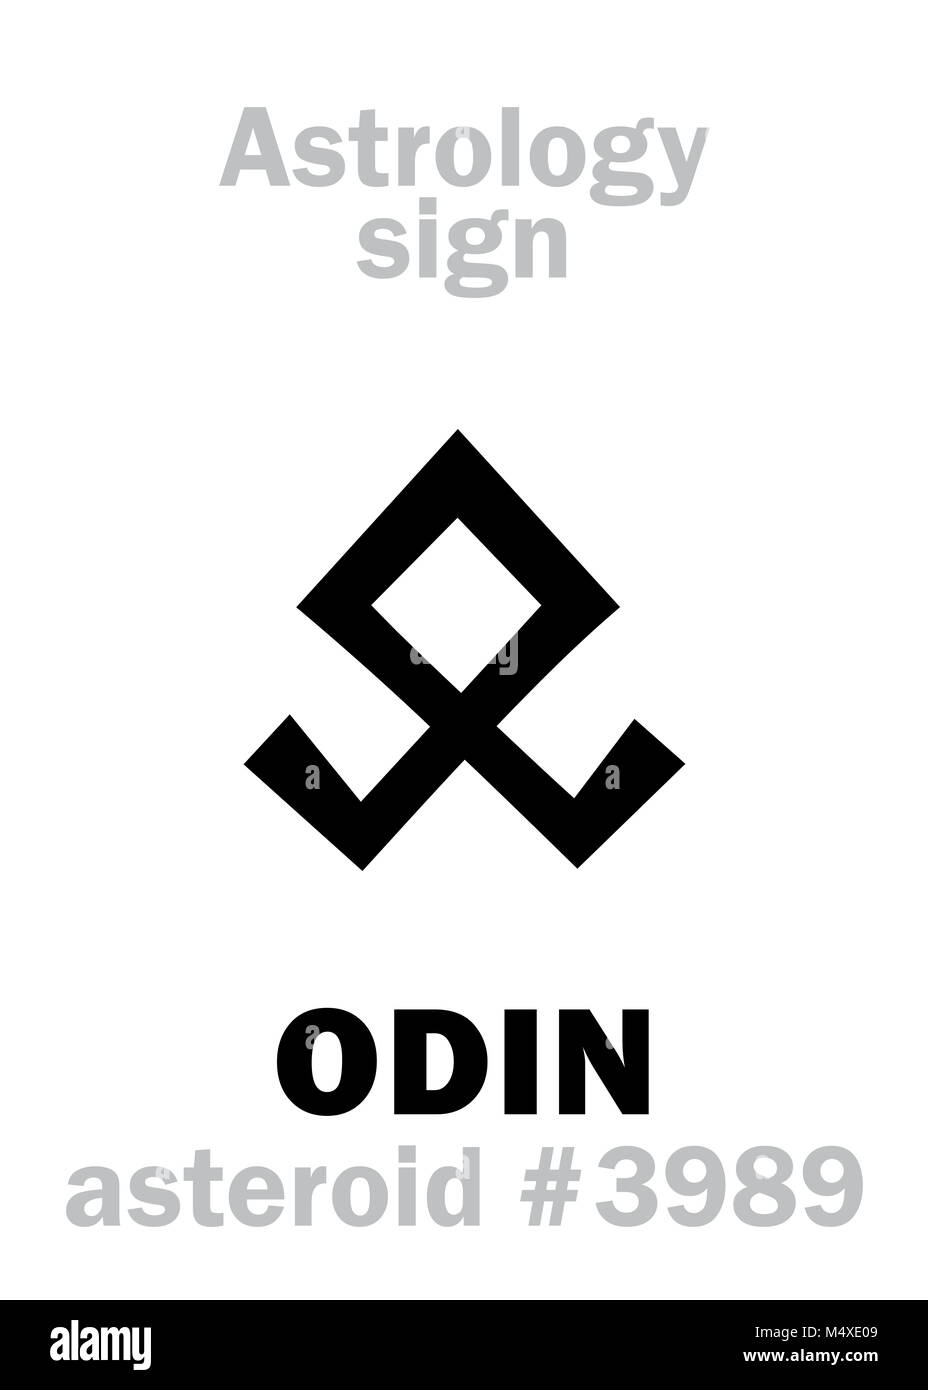 Astrology: asteroid ODIN - Stock Image